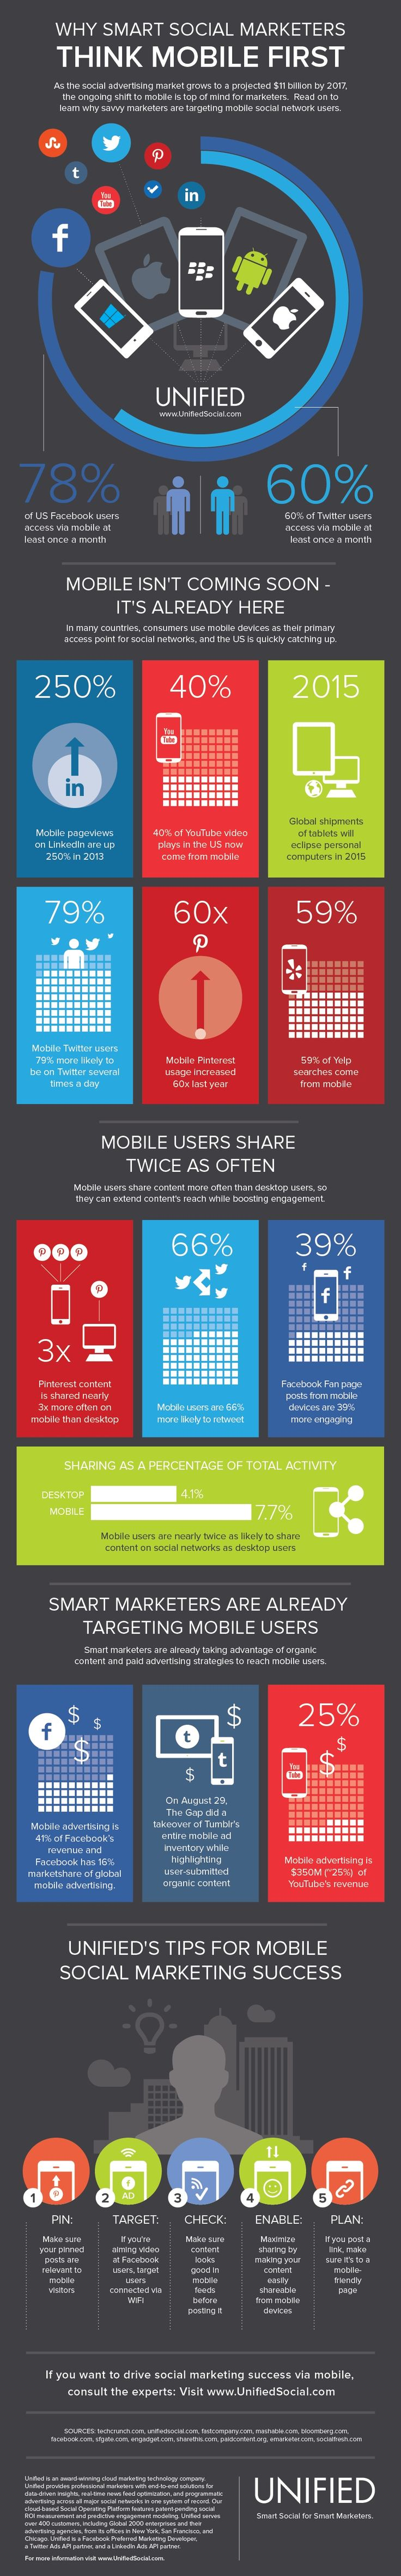 """""""Social Media Marketers Are Thinking Mobile First, Heres Why."""" #social #b2b #digital"""